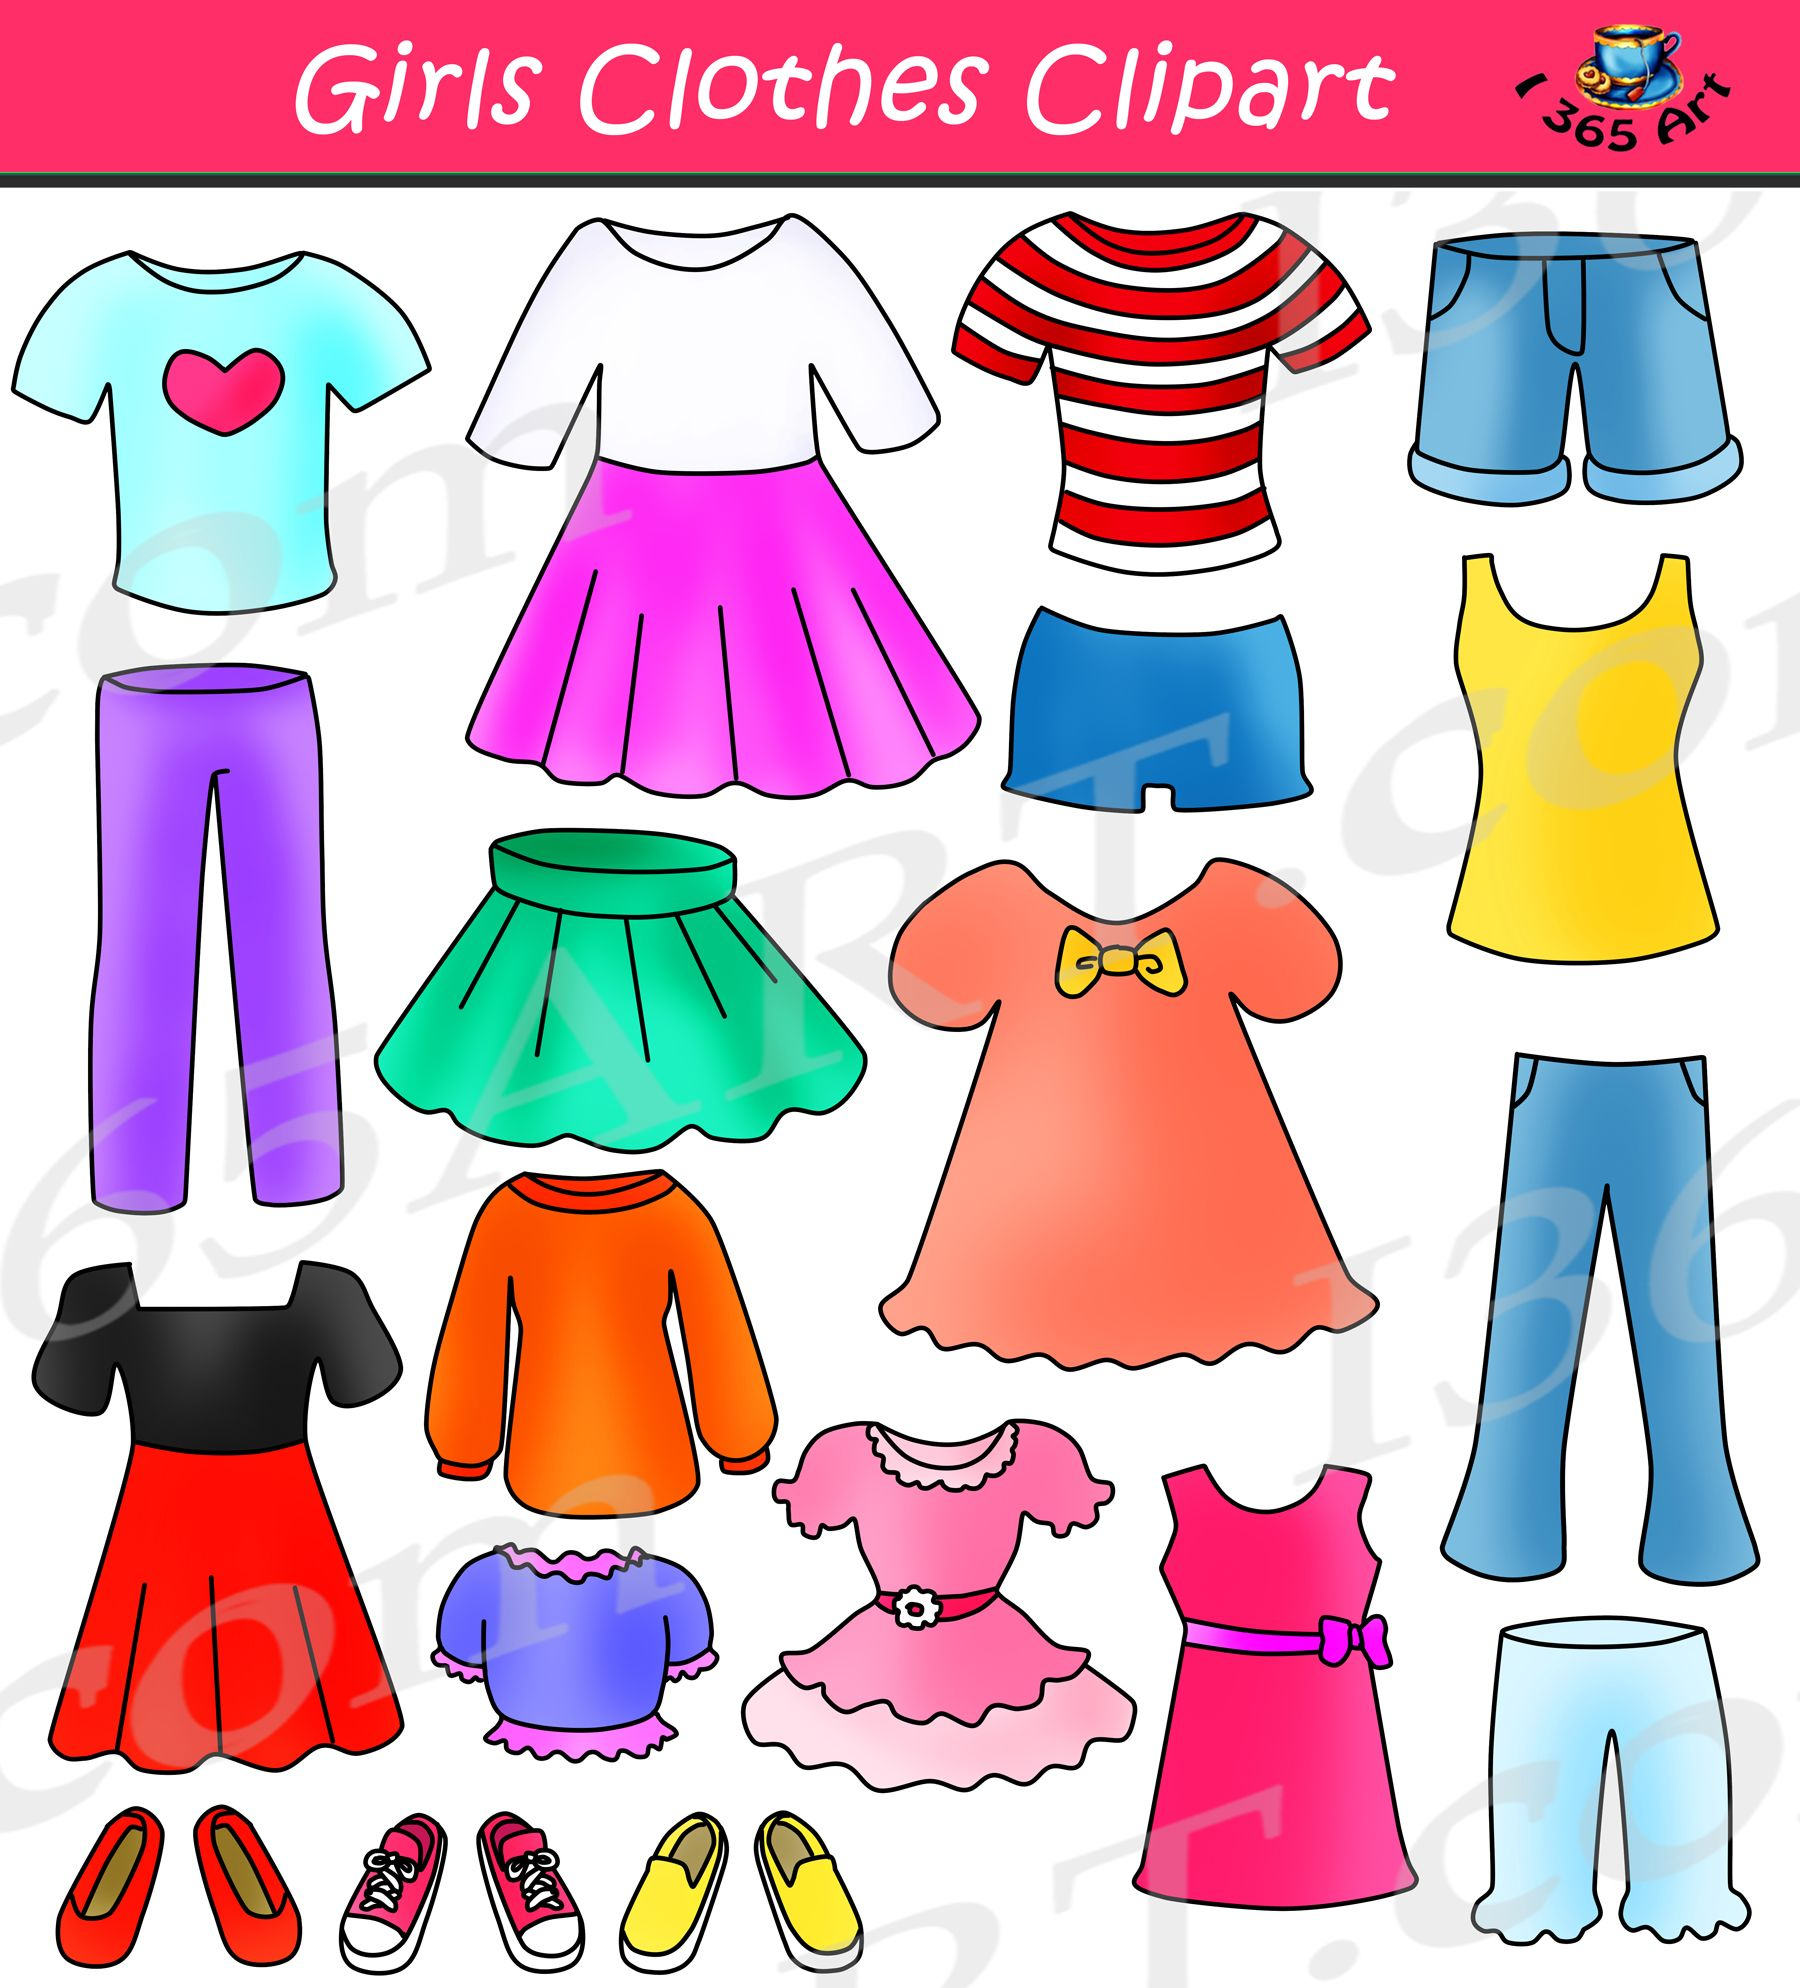 Clothing clipart nice clothes, Clothing nice clothes.